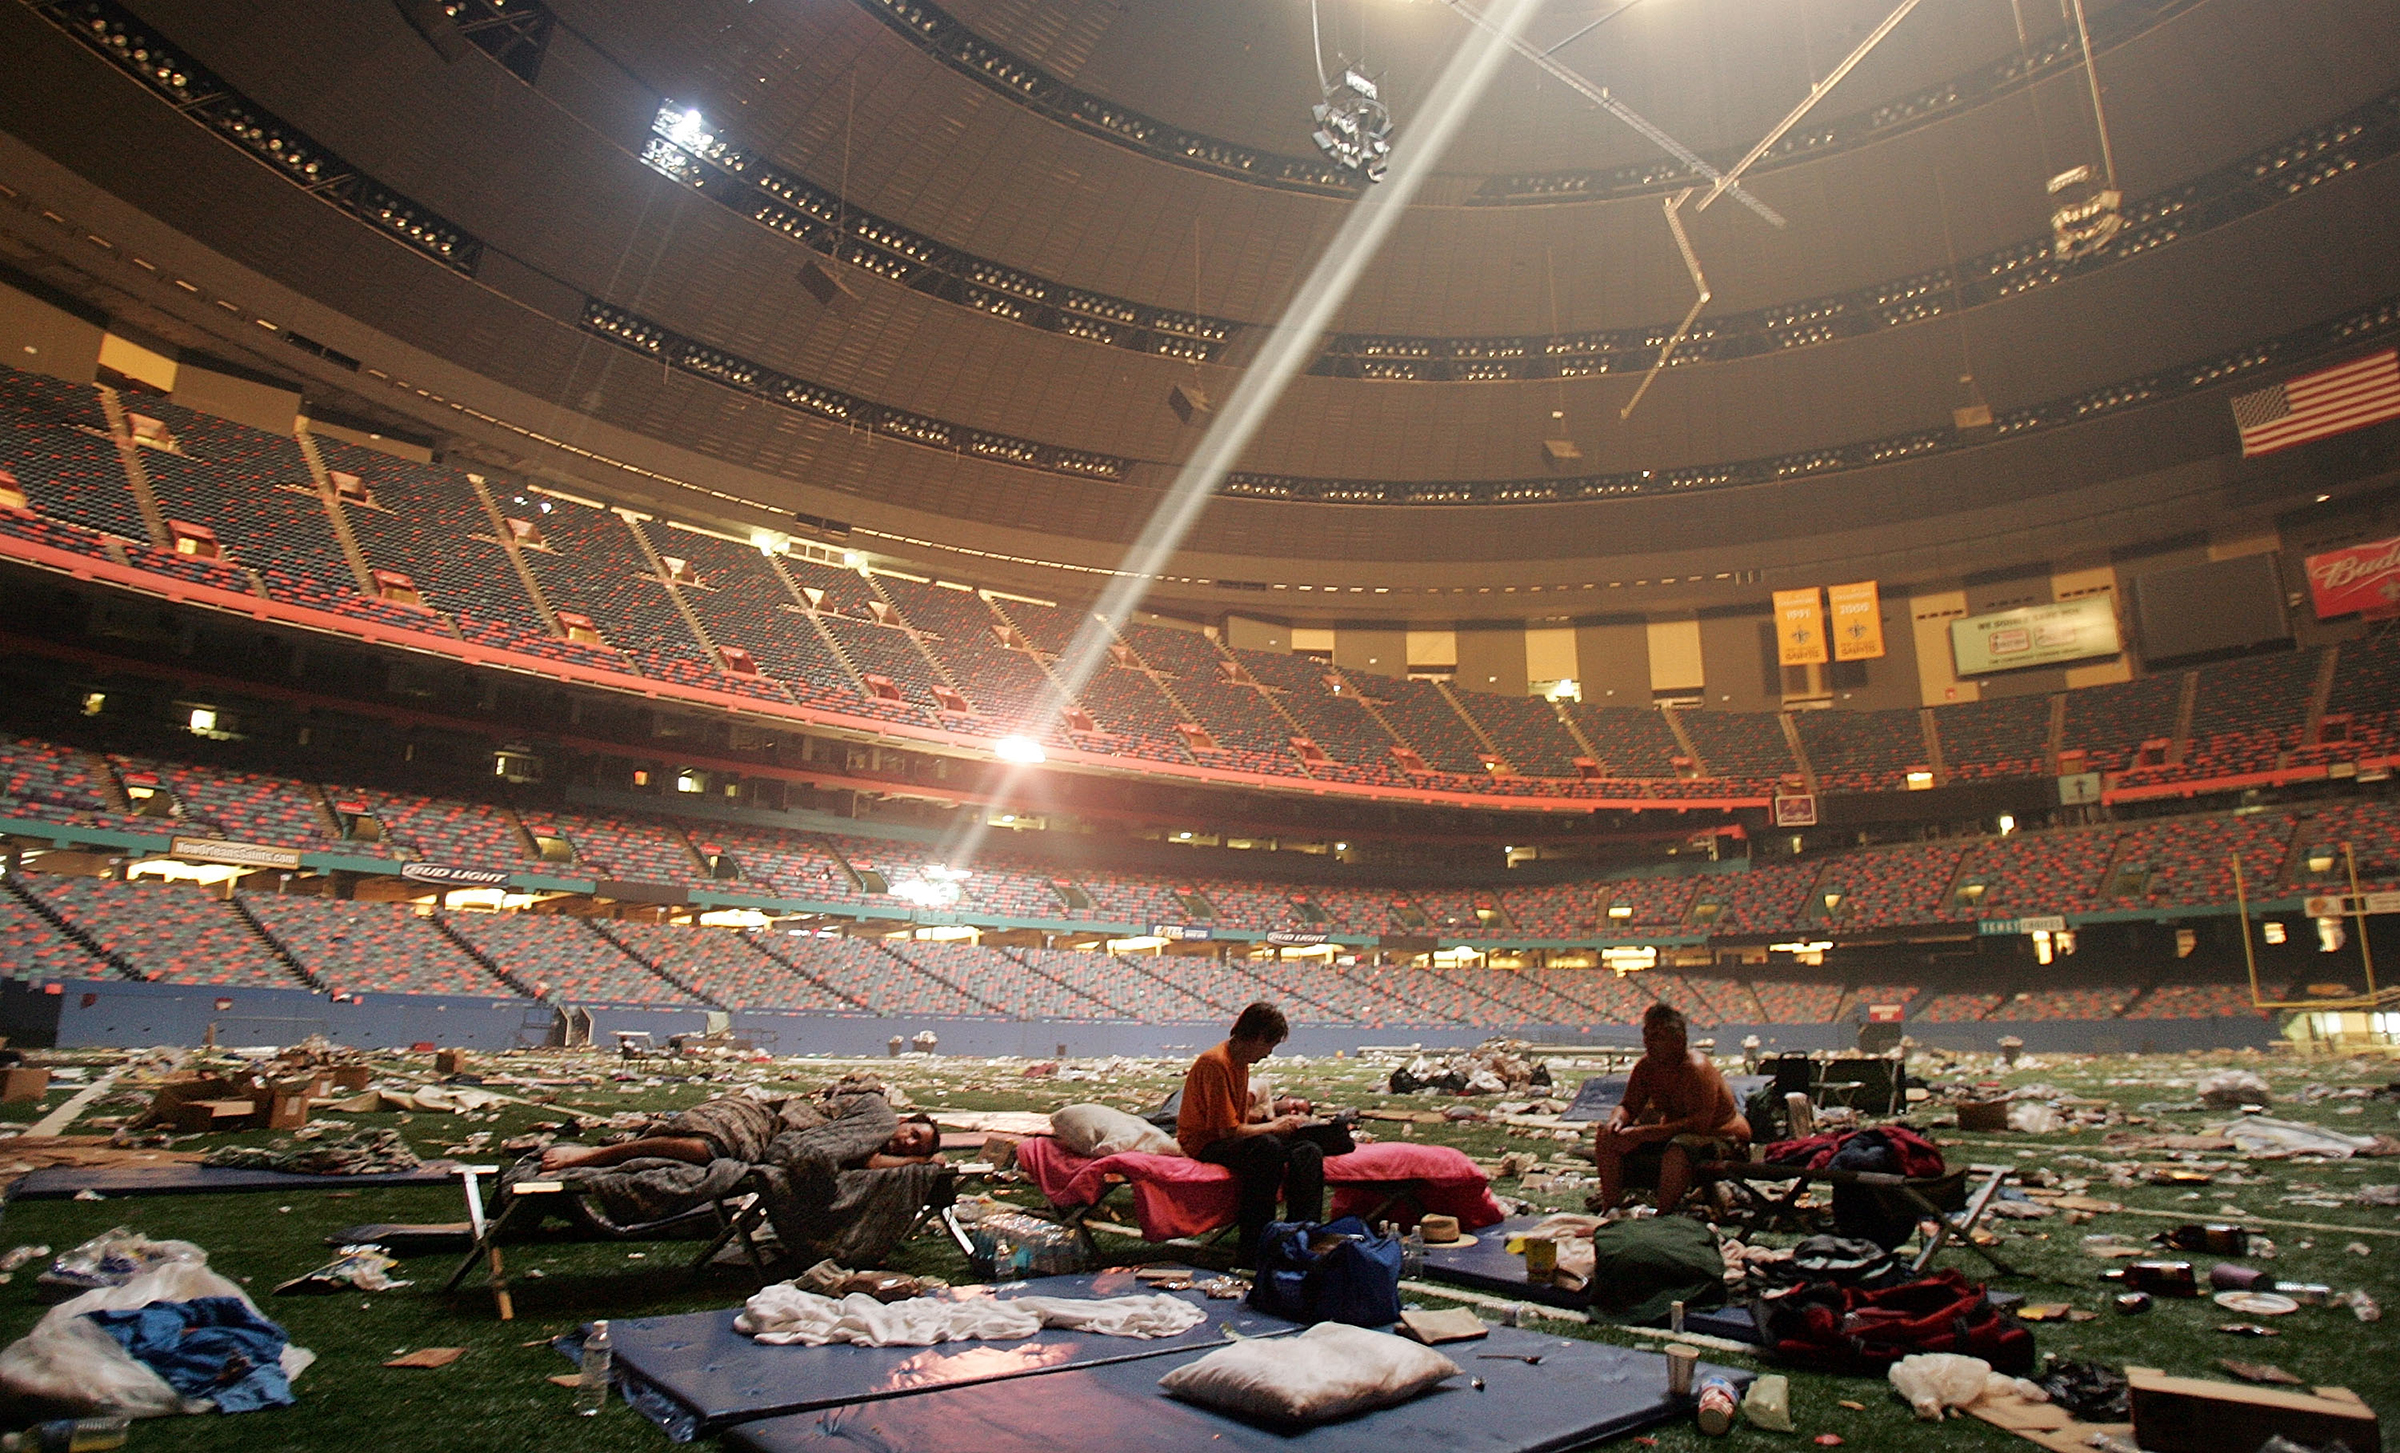 Stranded victims of Hurricane Katrina rest inside the Superdome on Sept. 2, 2005 in New Orleans.